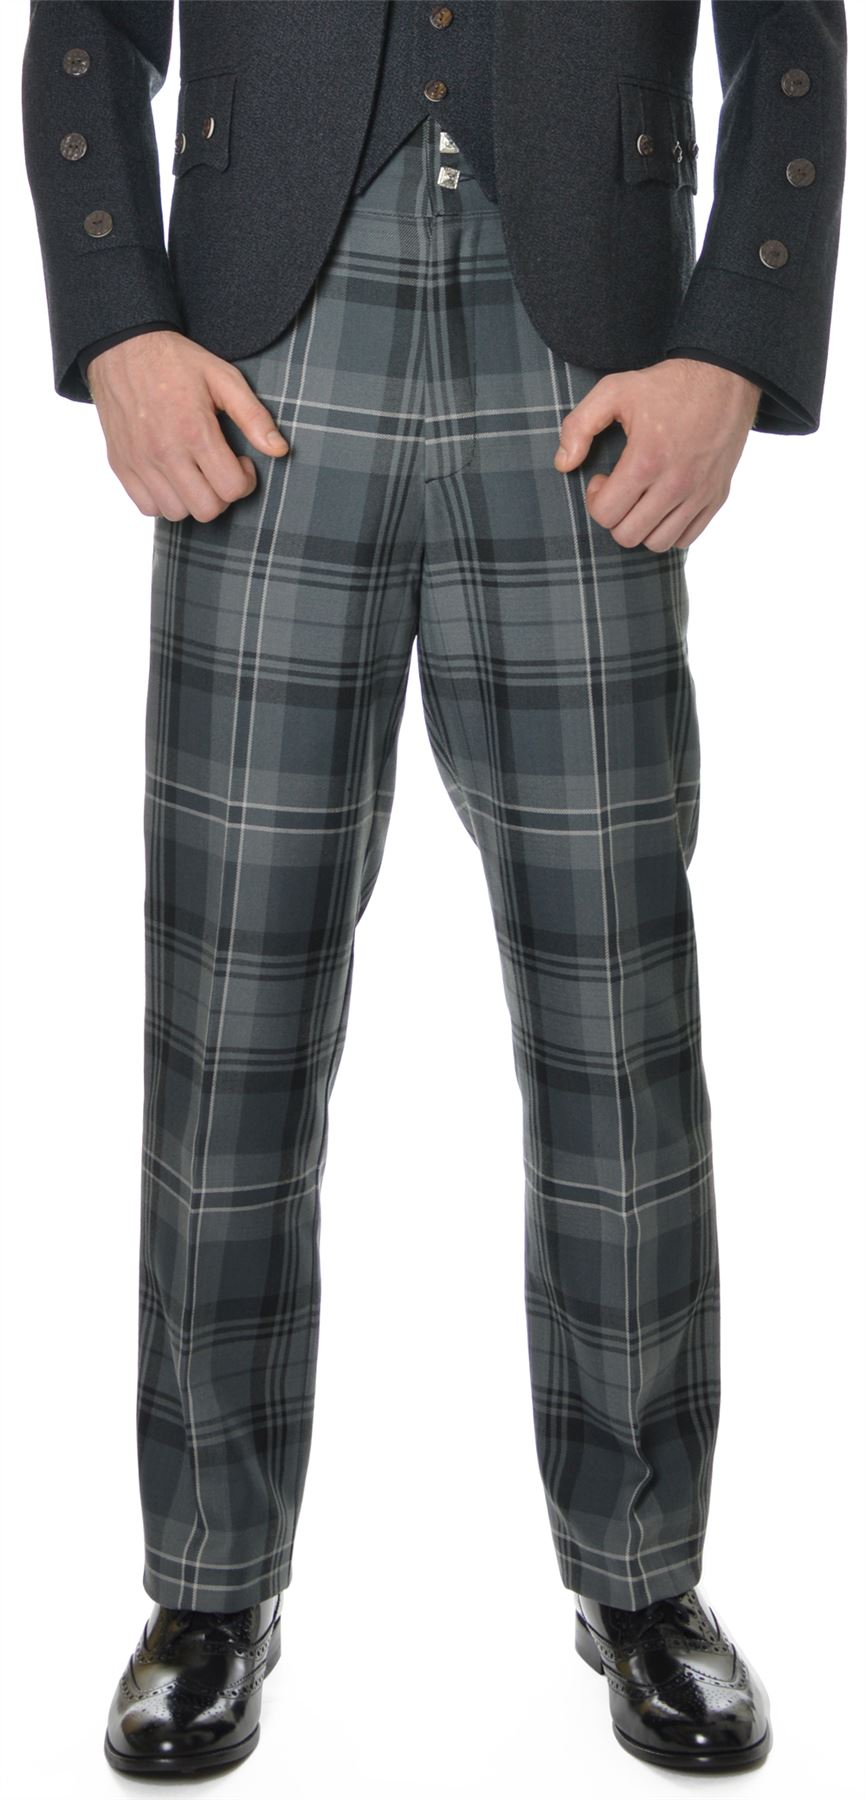 Checked Men Trousers Online shopping for Checked Men Trousers in India. Buy Checked Men Trousers Free Shipping Cash on Delivery 30 Day Returns.